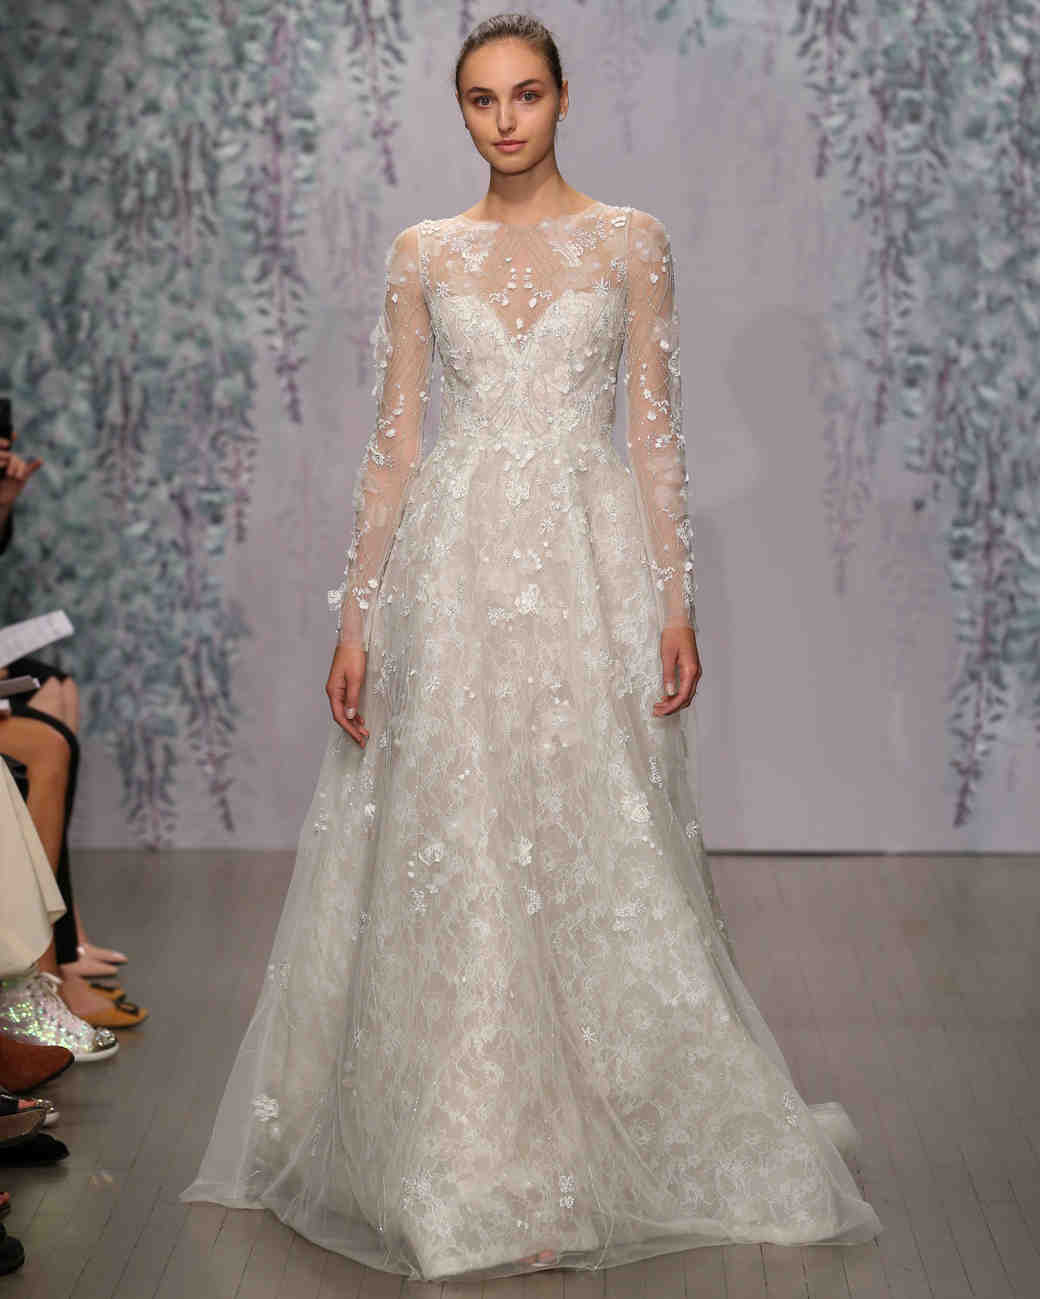 Wedding Gowns: Monique Lhuillier Fall 2016 Wedding Dress Collection